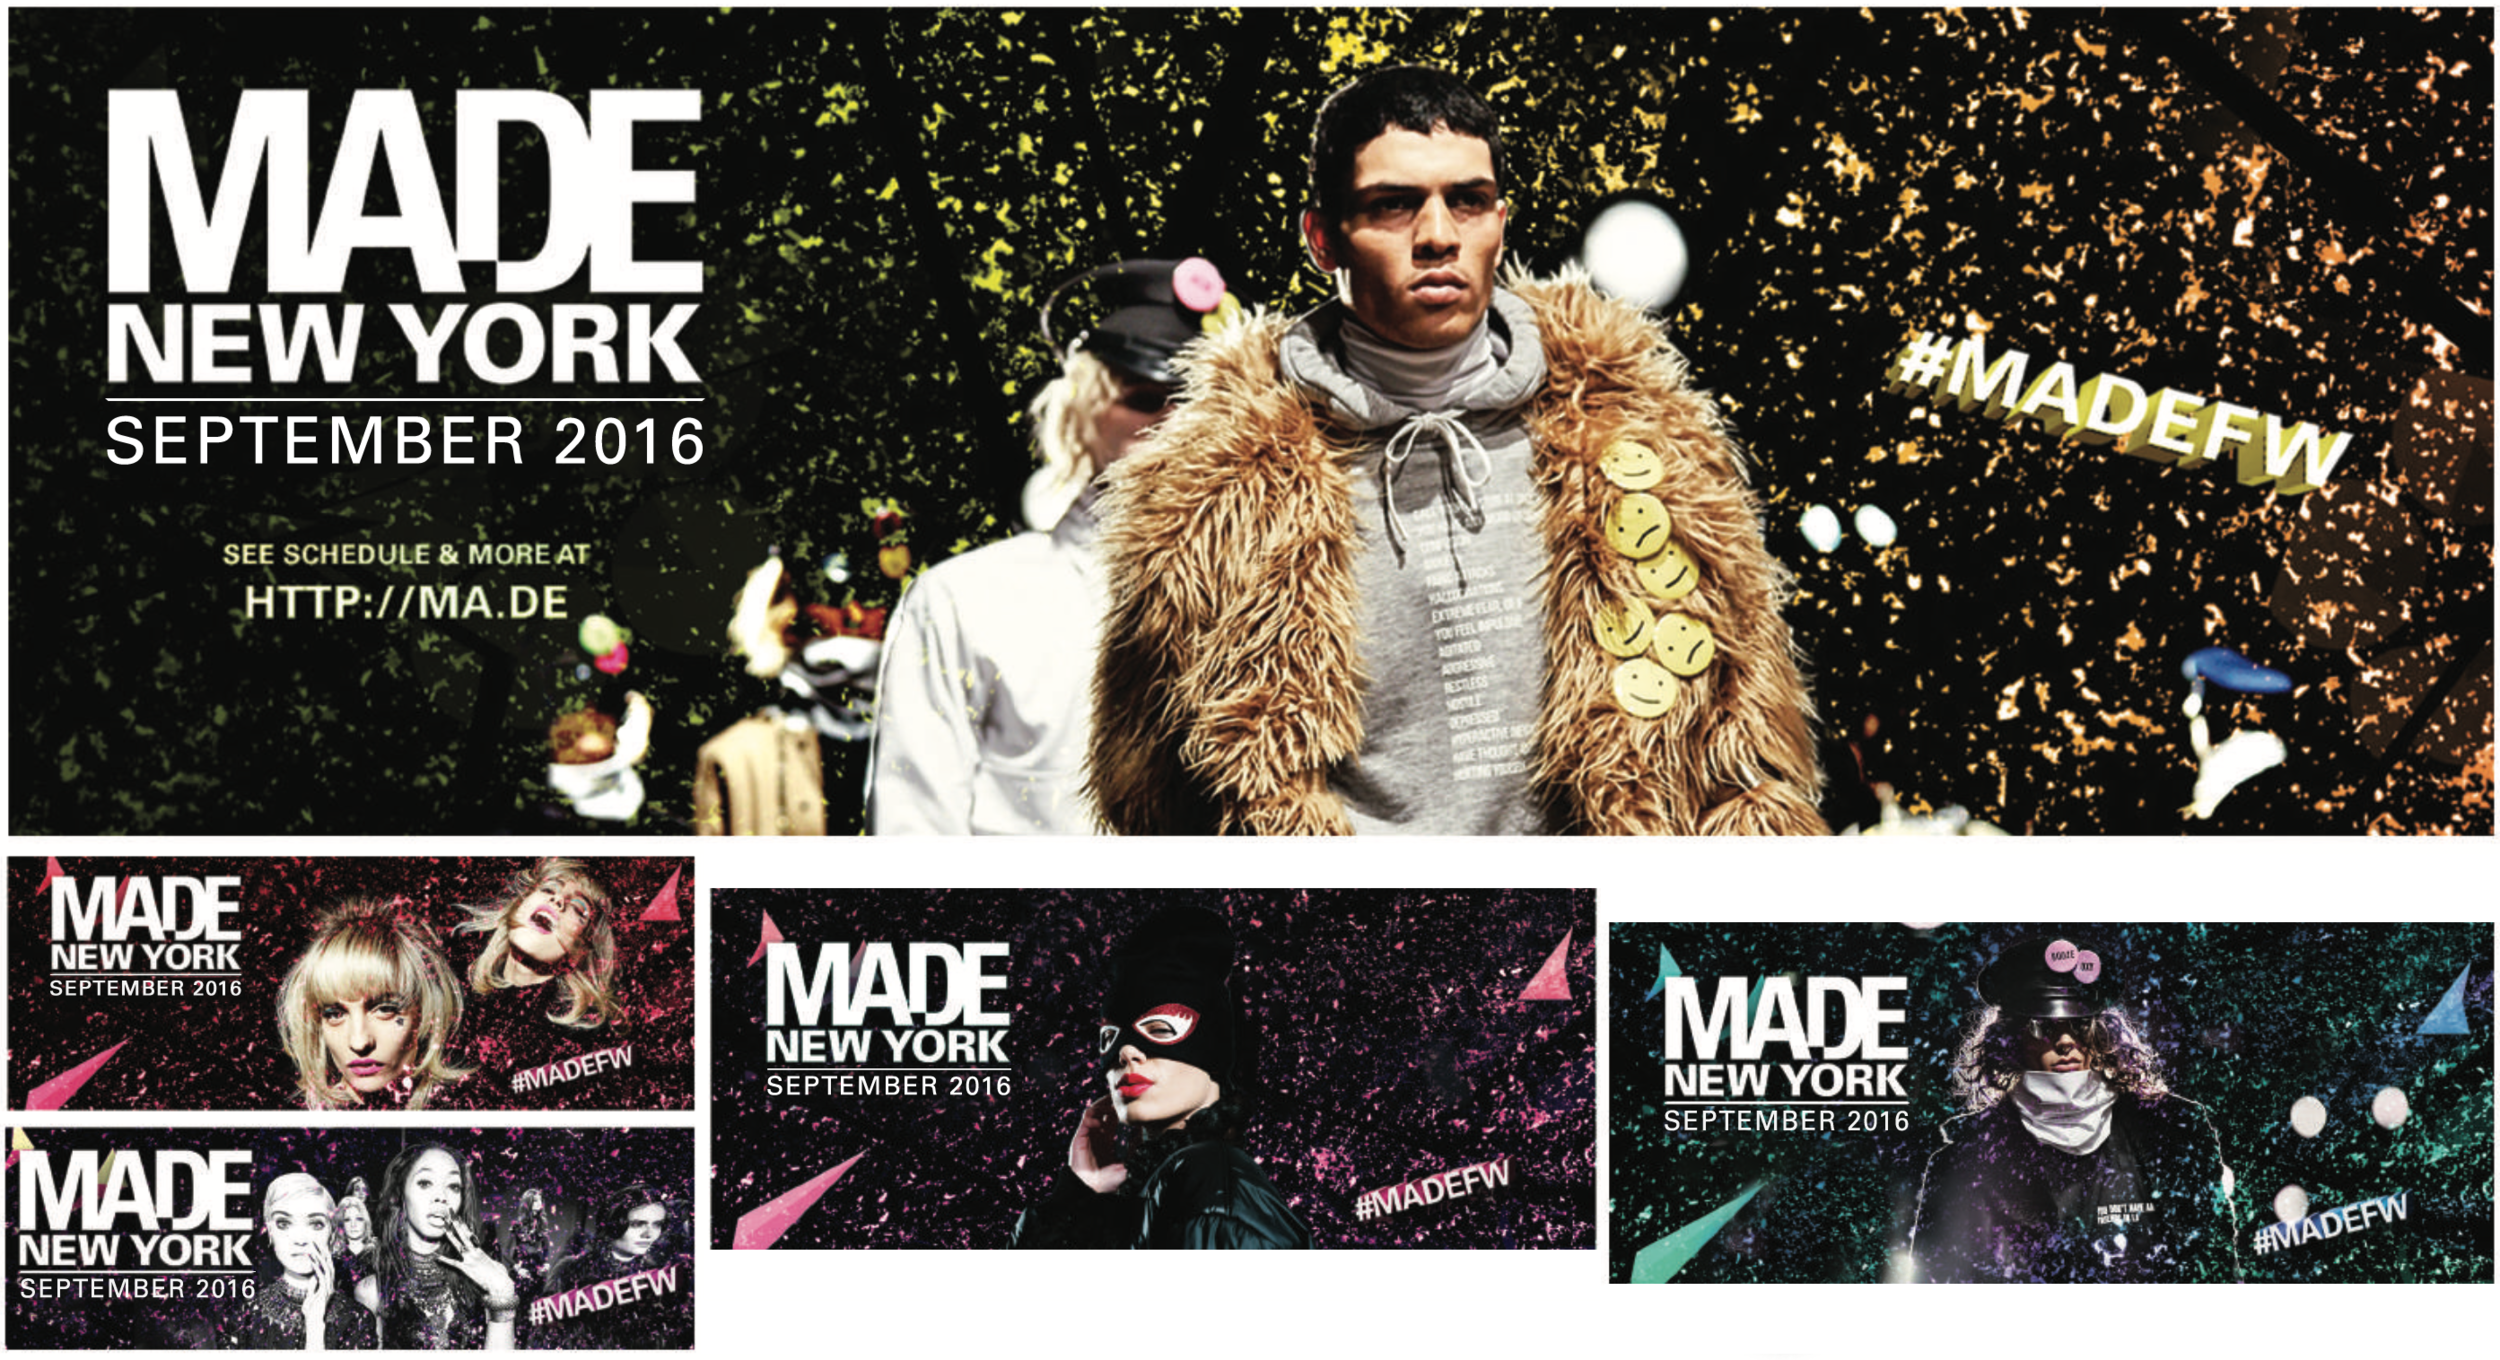 MADE NEW YORK SEPTEMBER 2016 BANNERS CREATIVE BY FILIPE_MEDEIROS copy.png